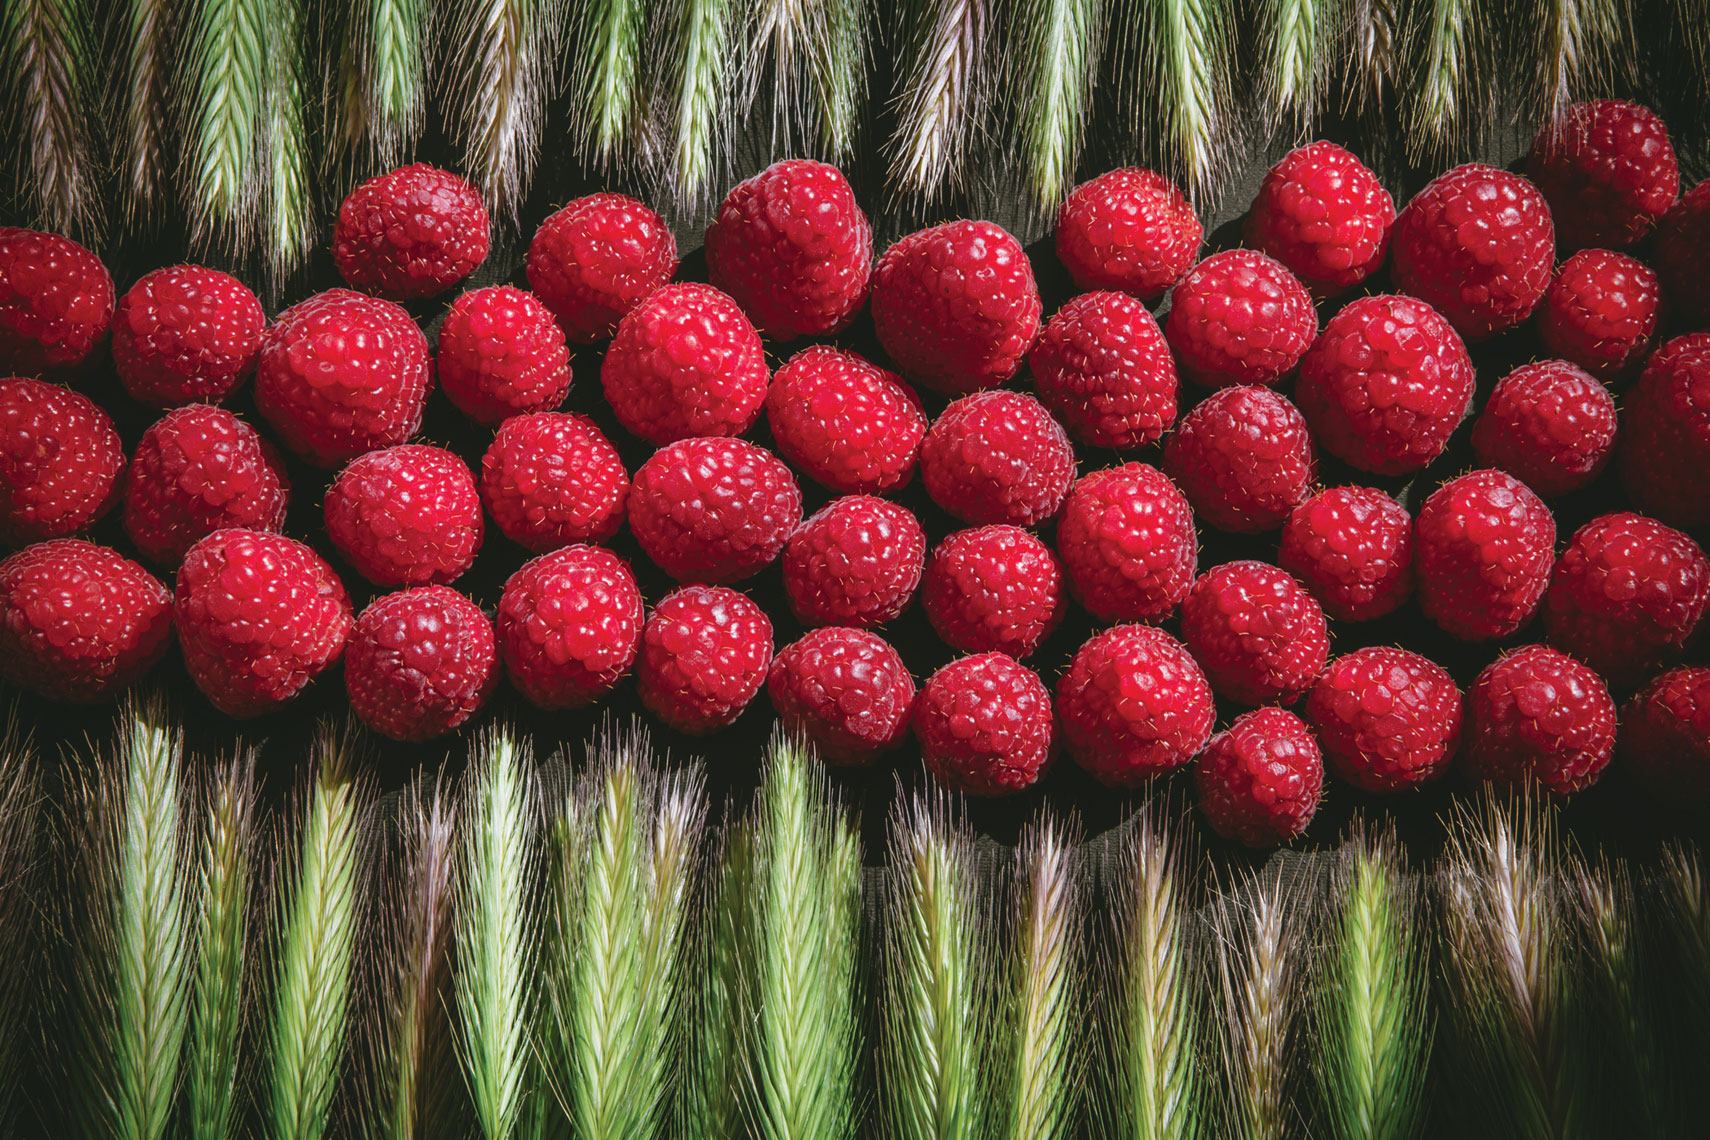 deepi-ahluwalia-tabletop-raspberries